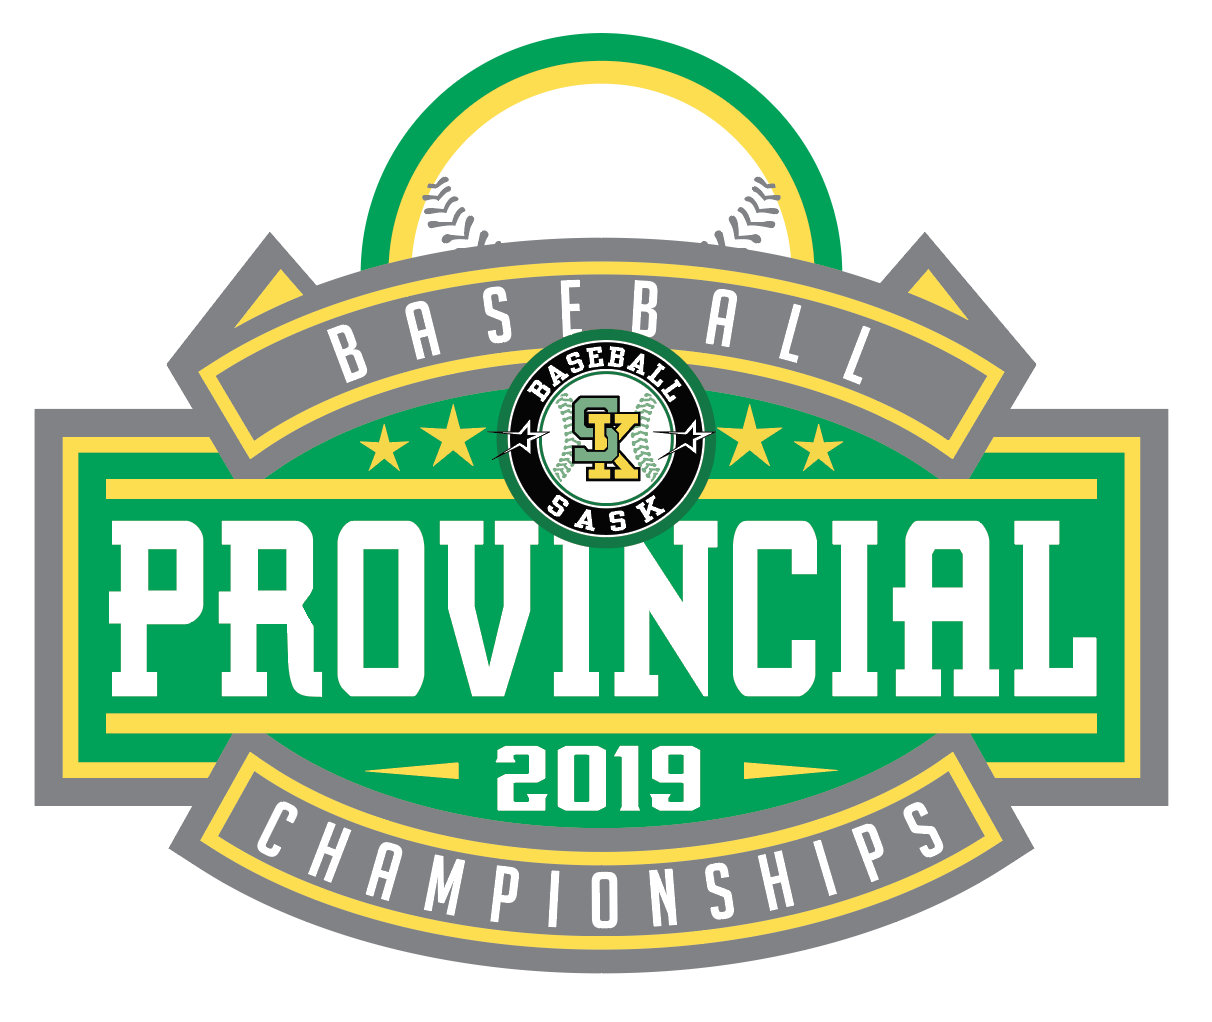 HOW TO REGISTER A TEAM IN PROVINCIALS?